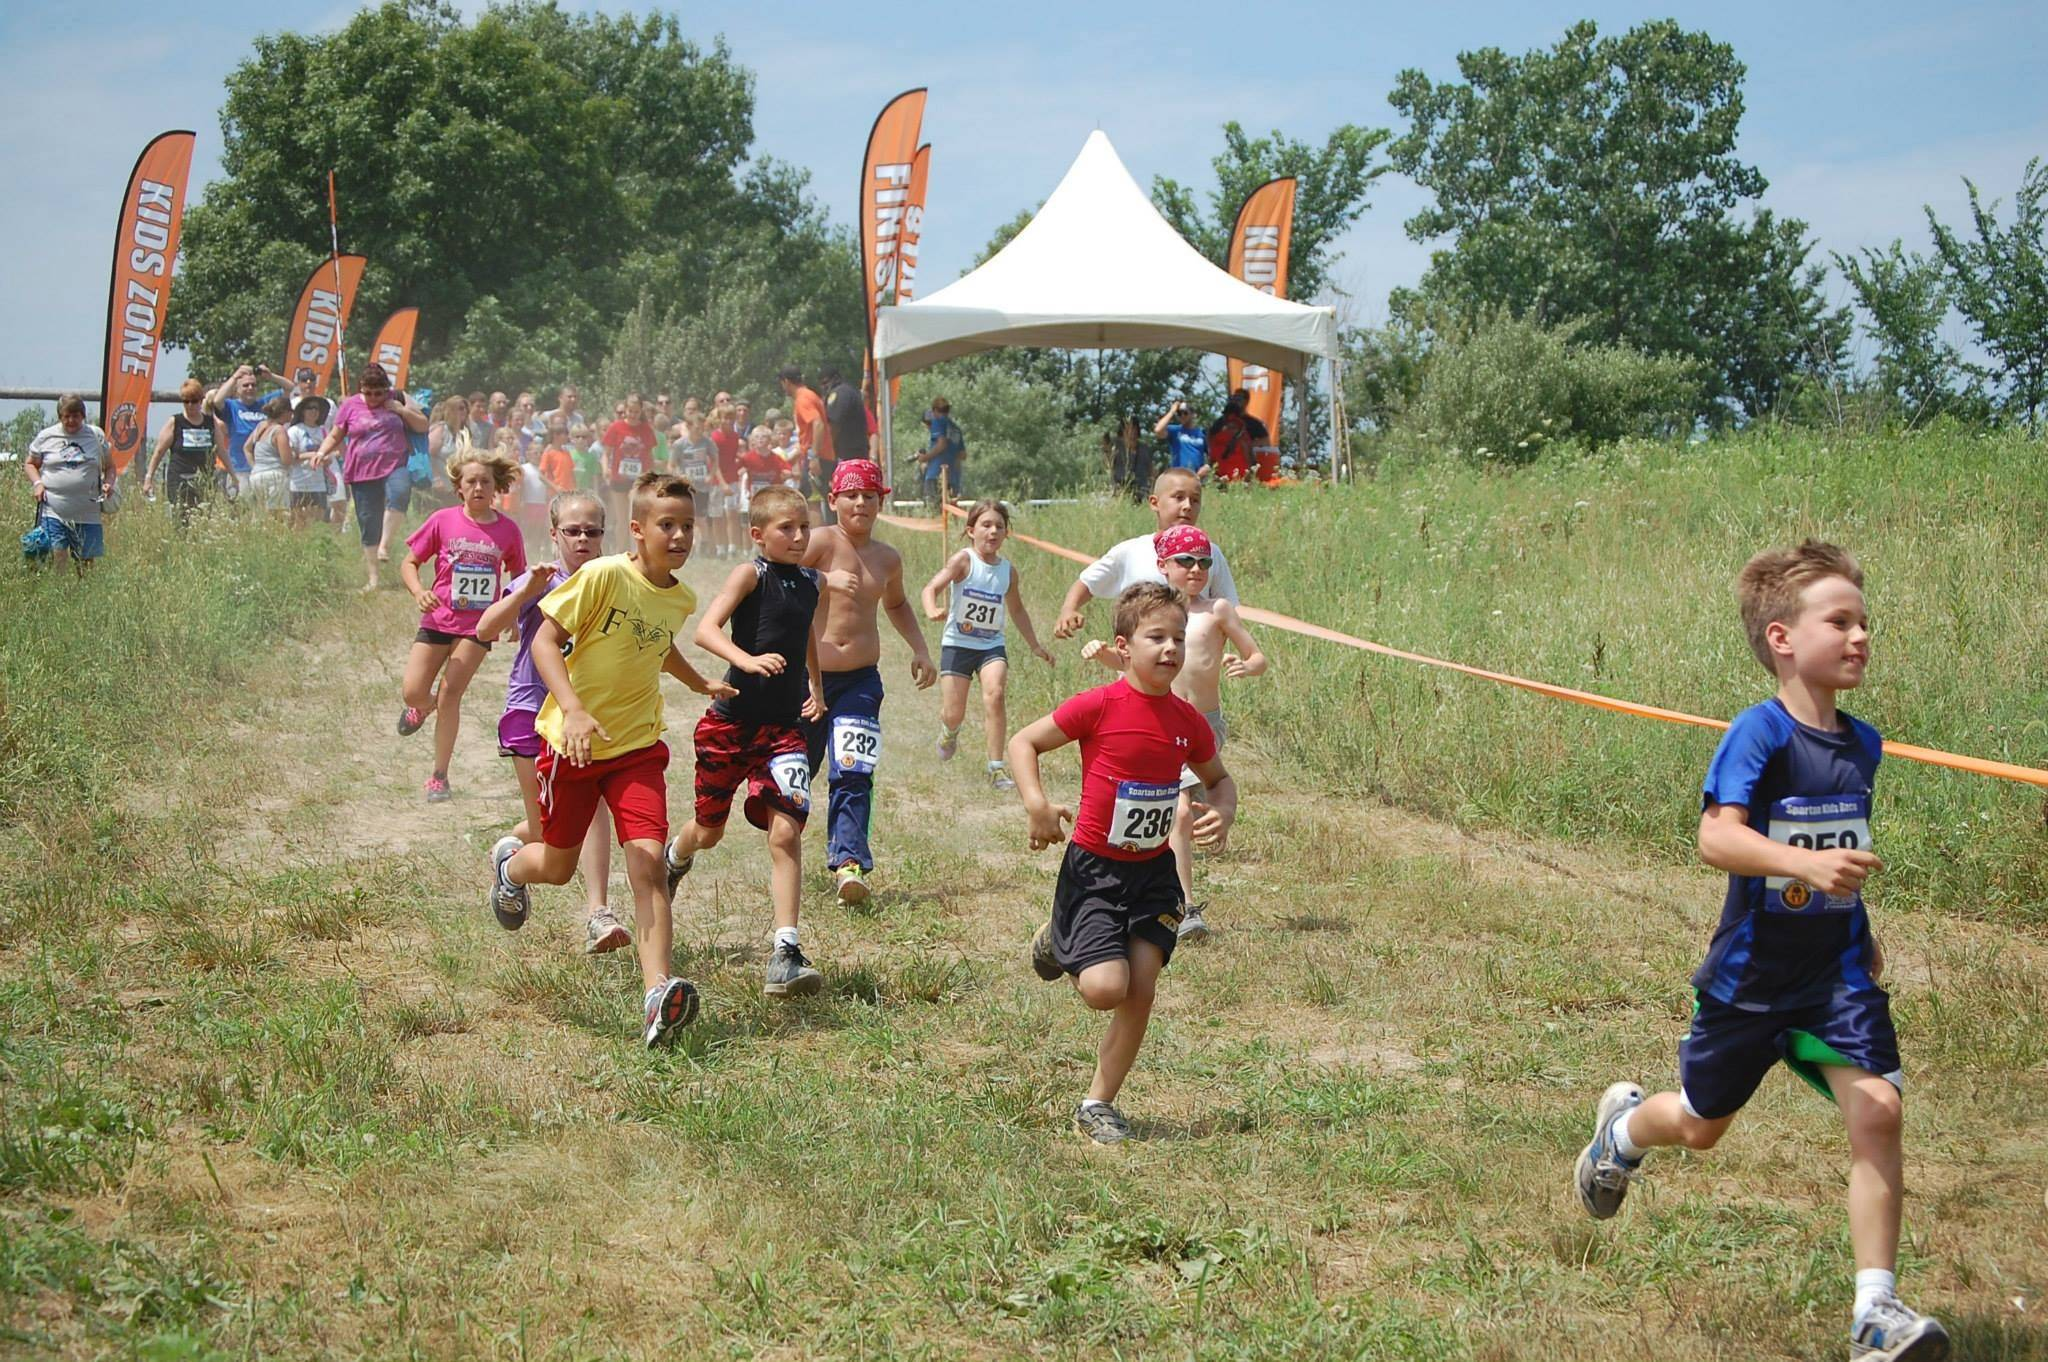 The new obstacle race Sean Hastings is bringing to his hometown of Naperville aims to get kids and their parents active and healthy together. The race begins at 9 a.m. Saturday, Aug. 2, in Frontier Park, 3380 Cedar Glade Drive in Naperville.